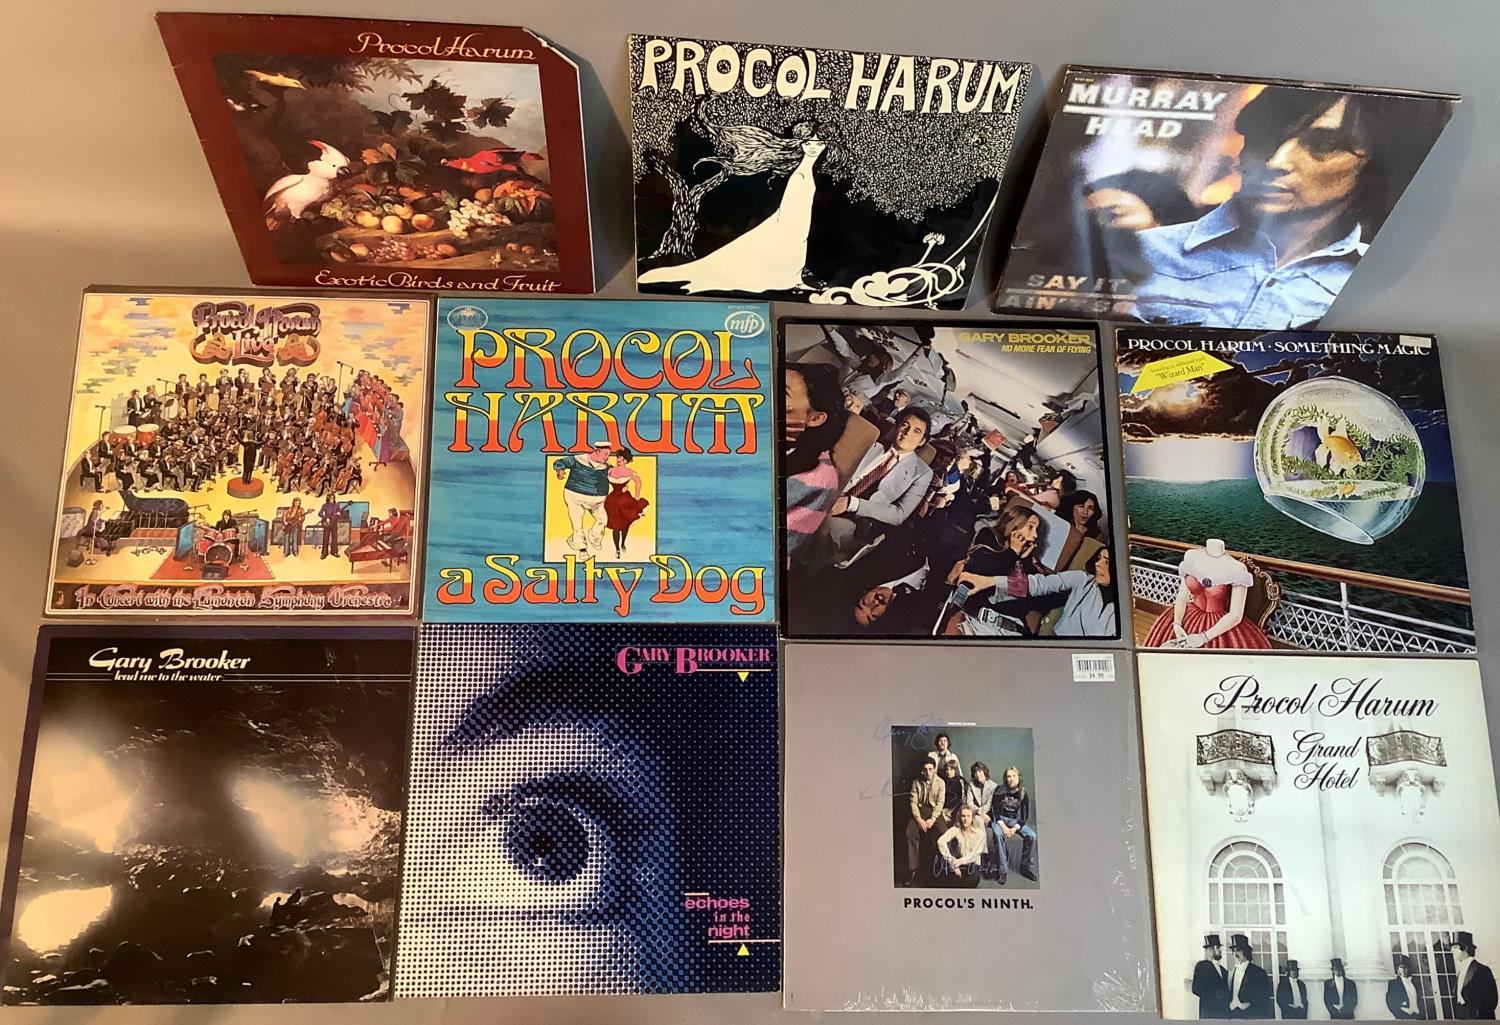 A quantity of LP's to include: Procul Harum - Procul Harum, Procul Harum - A Salty Dog, Procul Harum - Image 2 of 3